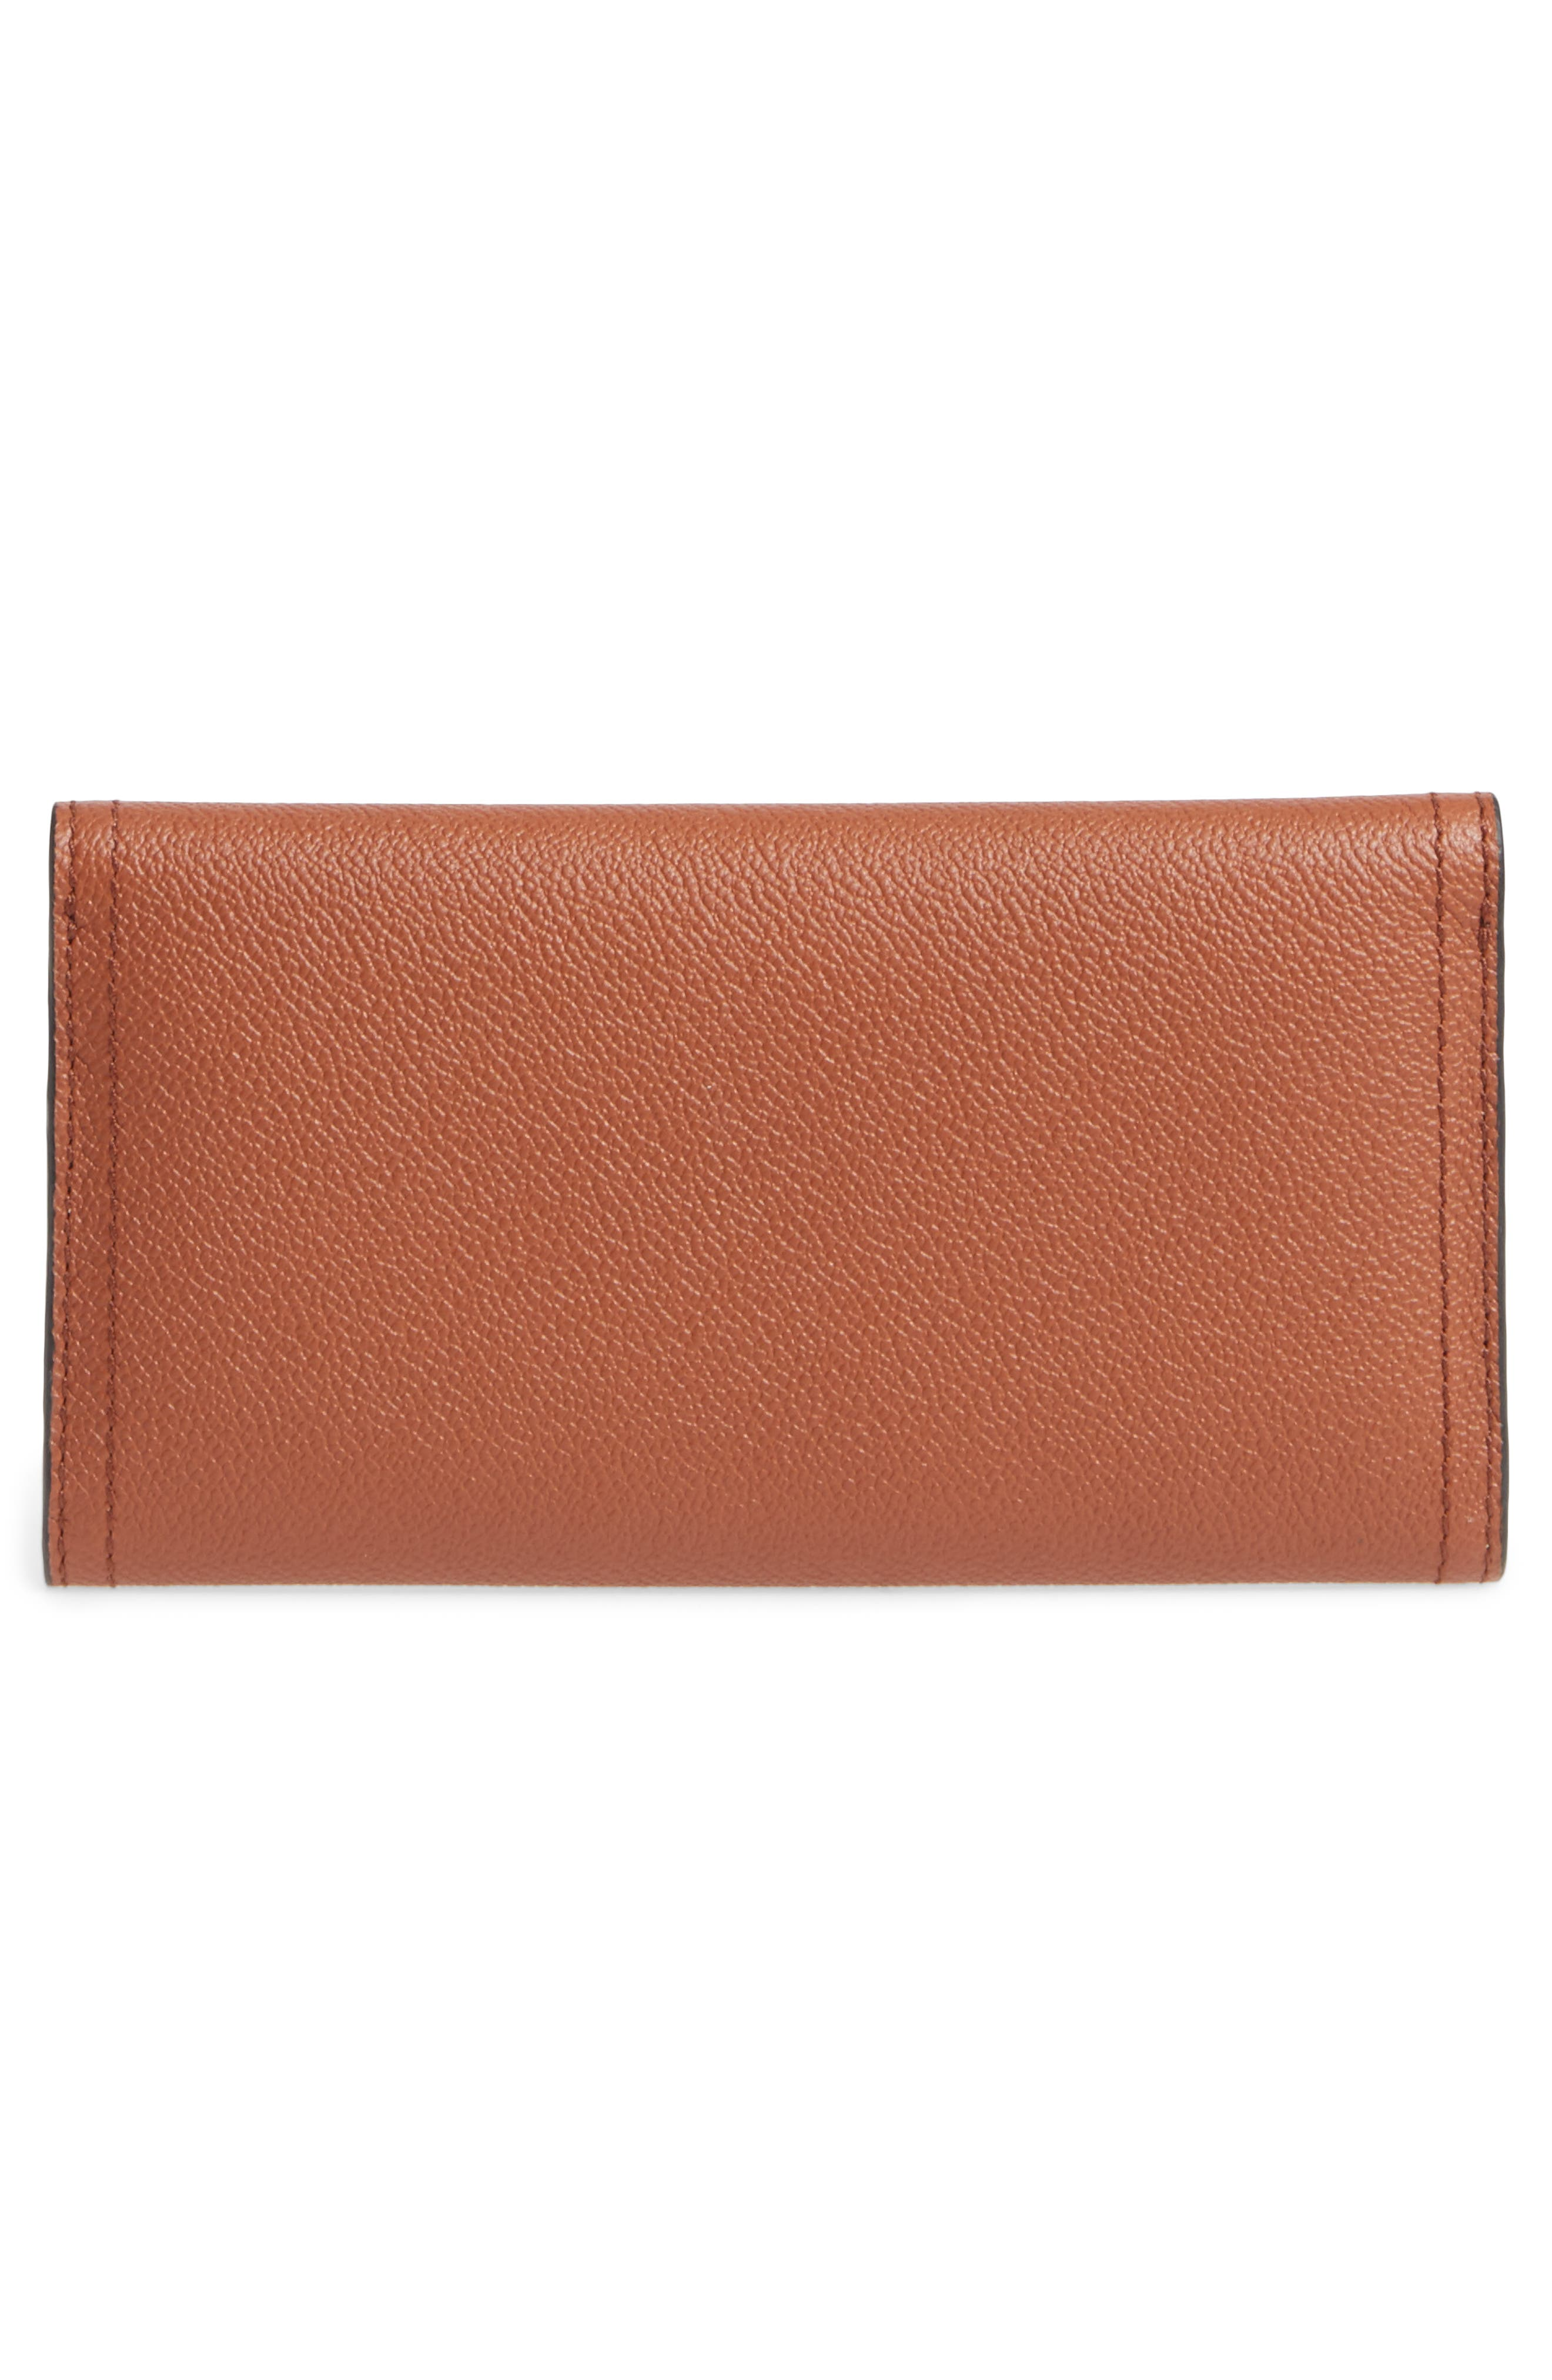 Kenton Leather Flap Wallet with Removable Check Card Case,                             Alternate thumbnail 3, color,                             200